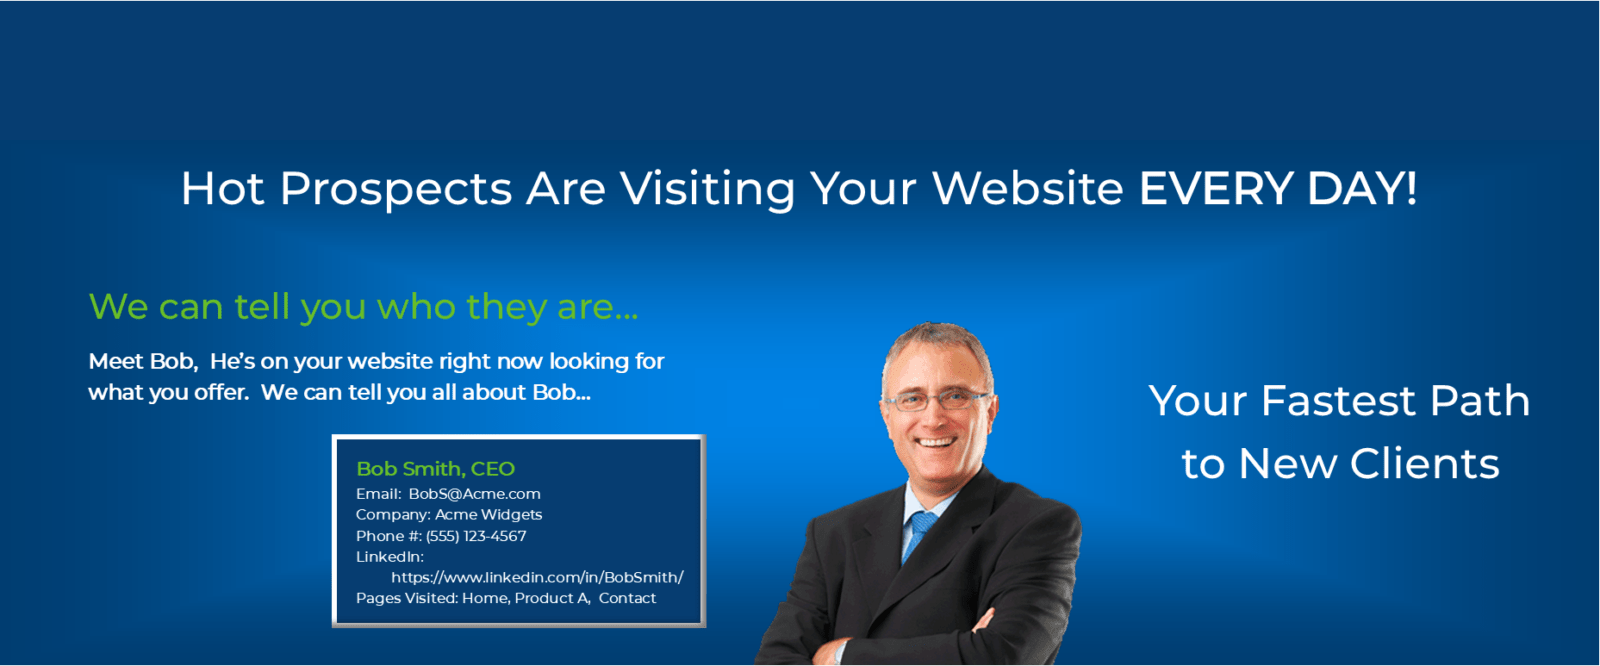 Hot Prospects are visiting your website every day! We can tell you who they are... Visitor InSites Your Fastest Path To New Clients.